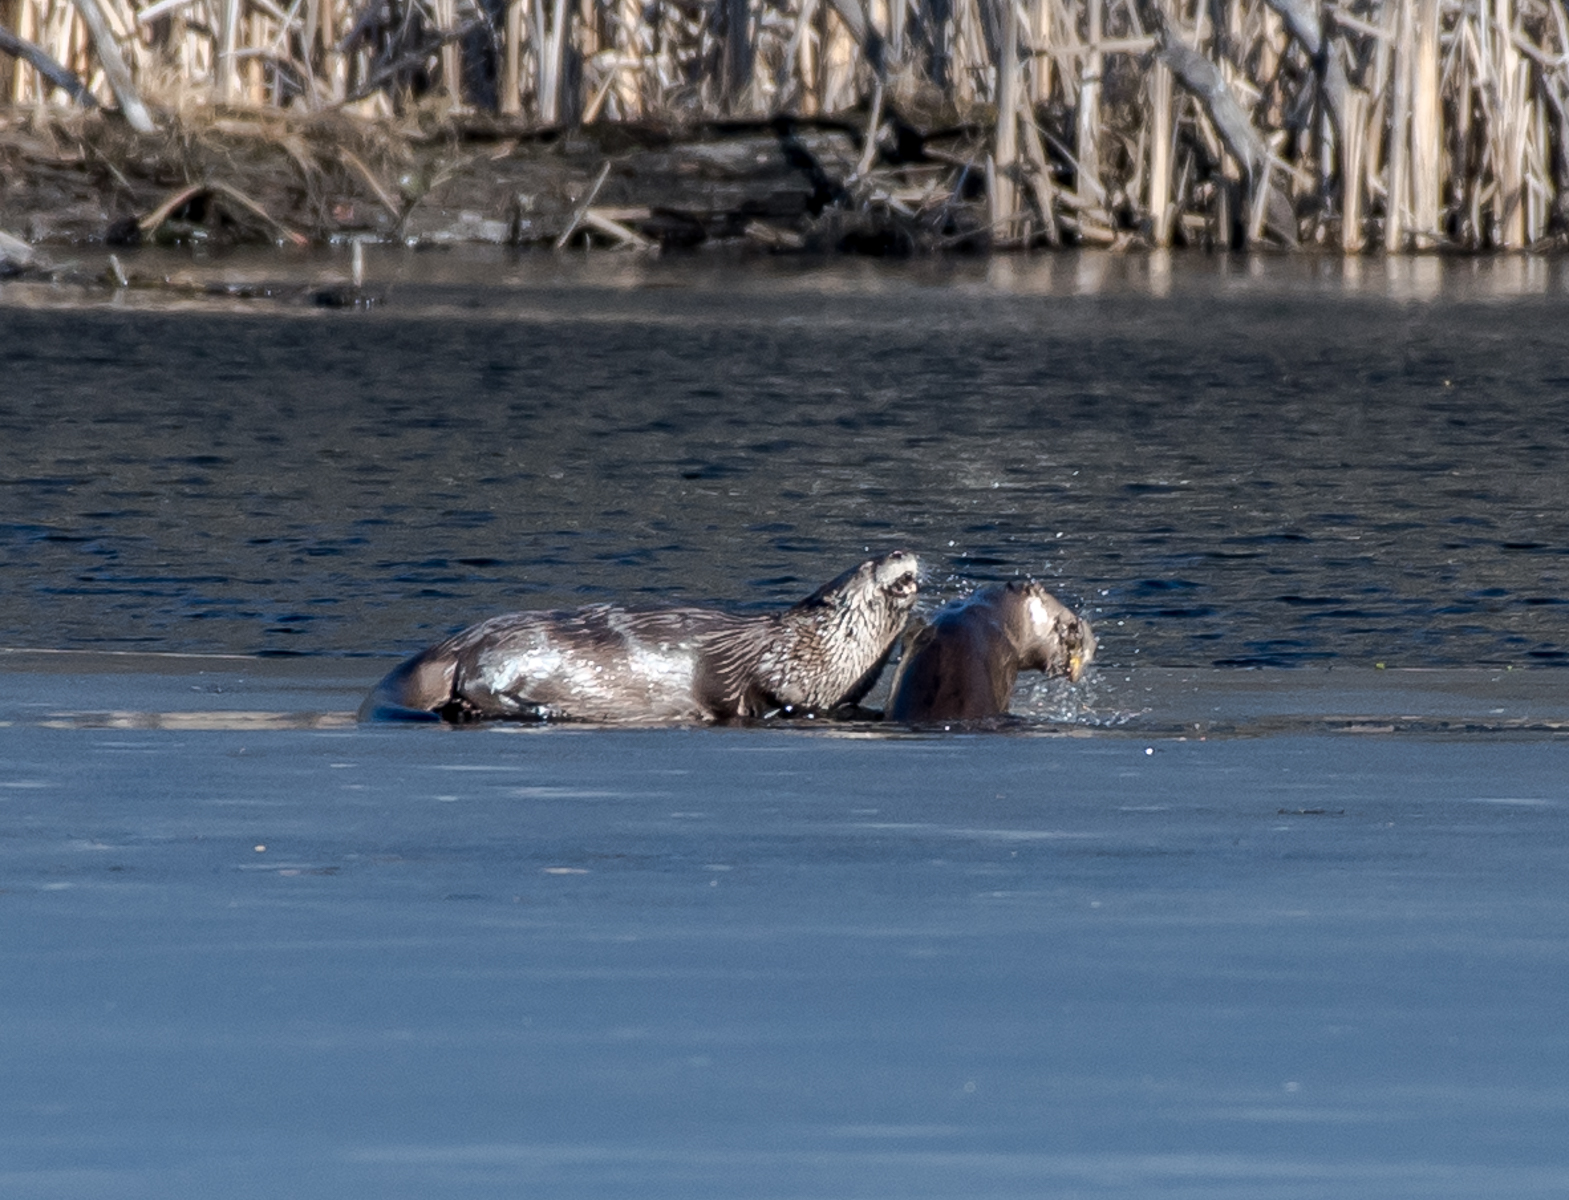 I spotted these two river otters feeding on fish early this morning in one of my favorite ponds. As I was watching one up popped the other with a fish and shook it very vigorously ...... 2/26/16